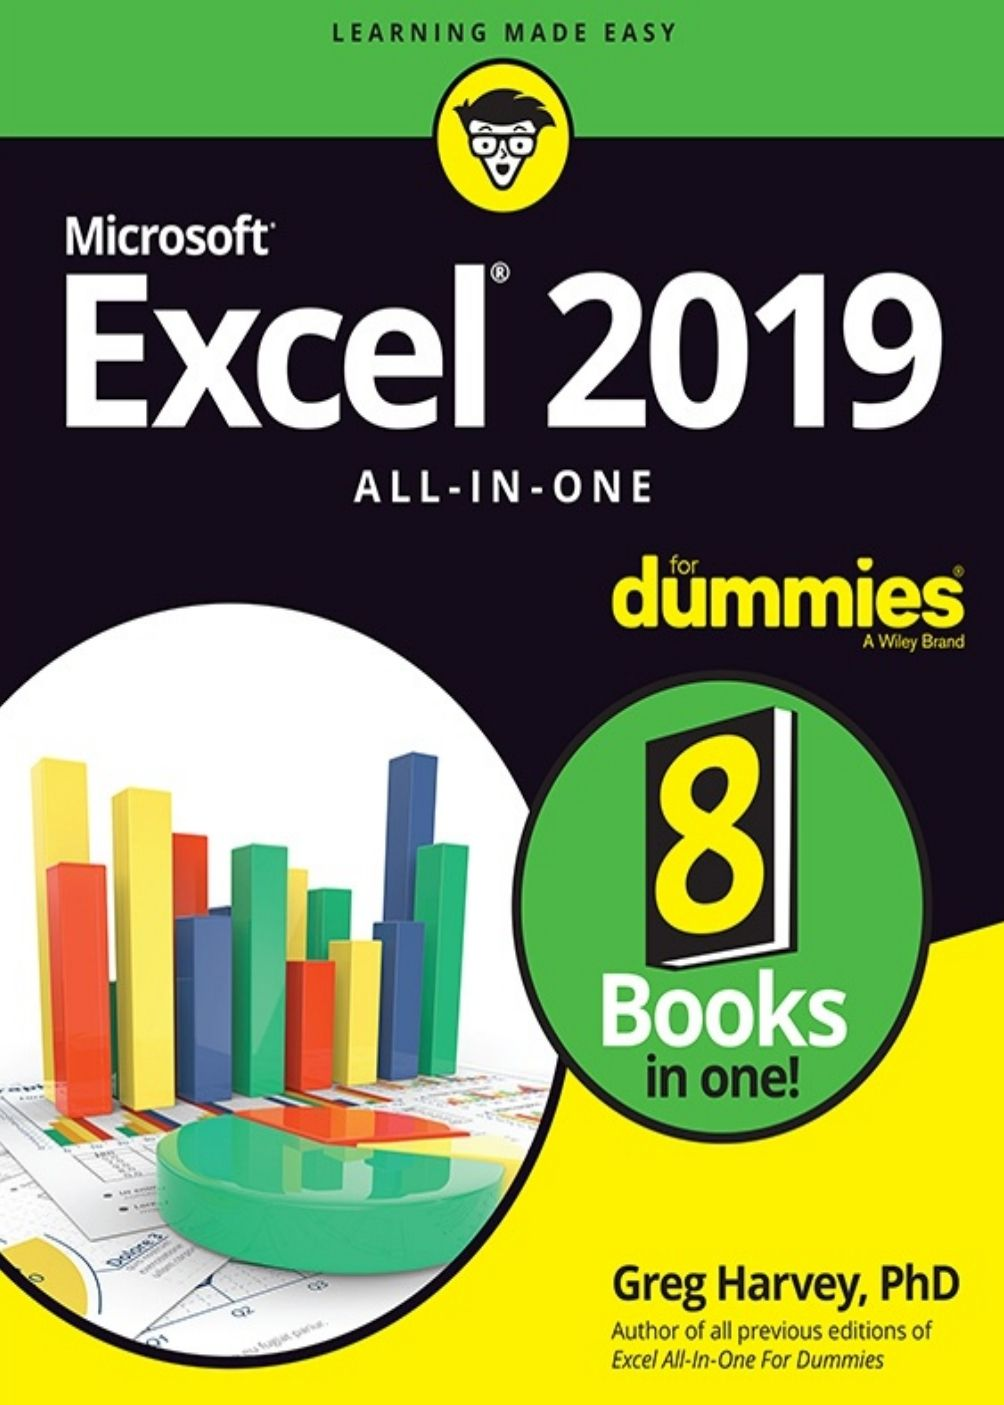 Microsoft Excel 2019 All In One For Dummies 8 Books In One Ebook Vba Excel Microsoft Excel Blog Microsoft